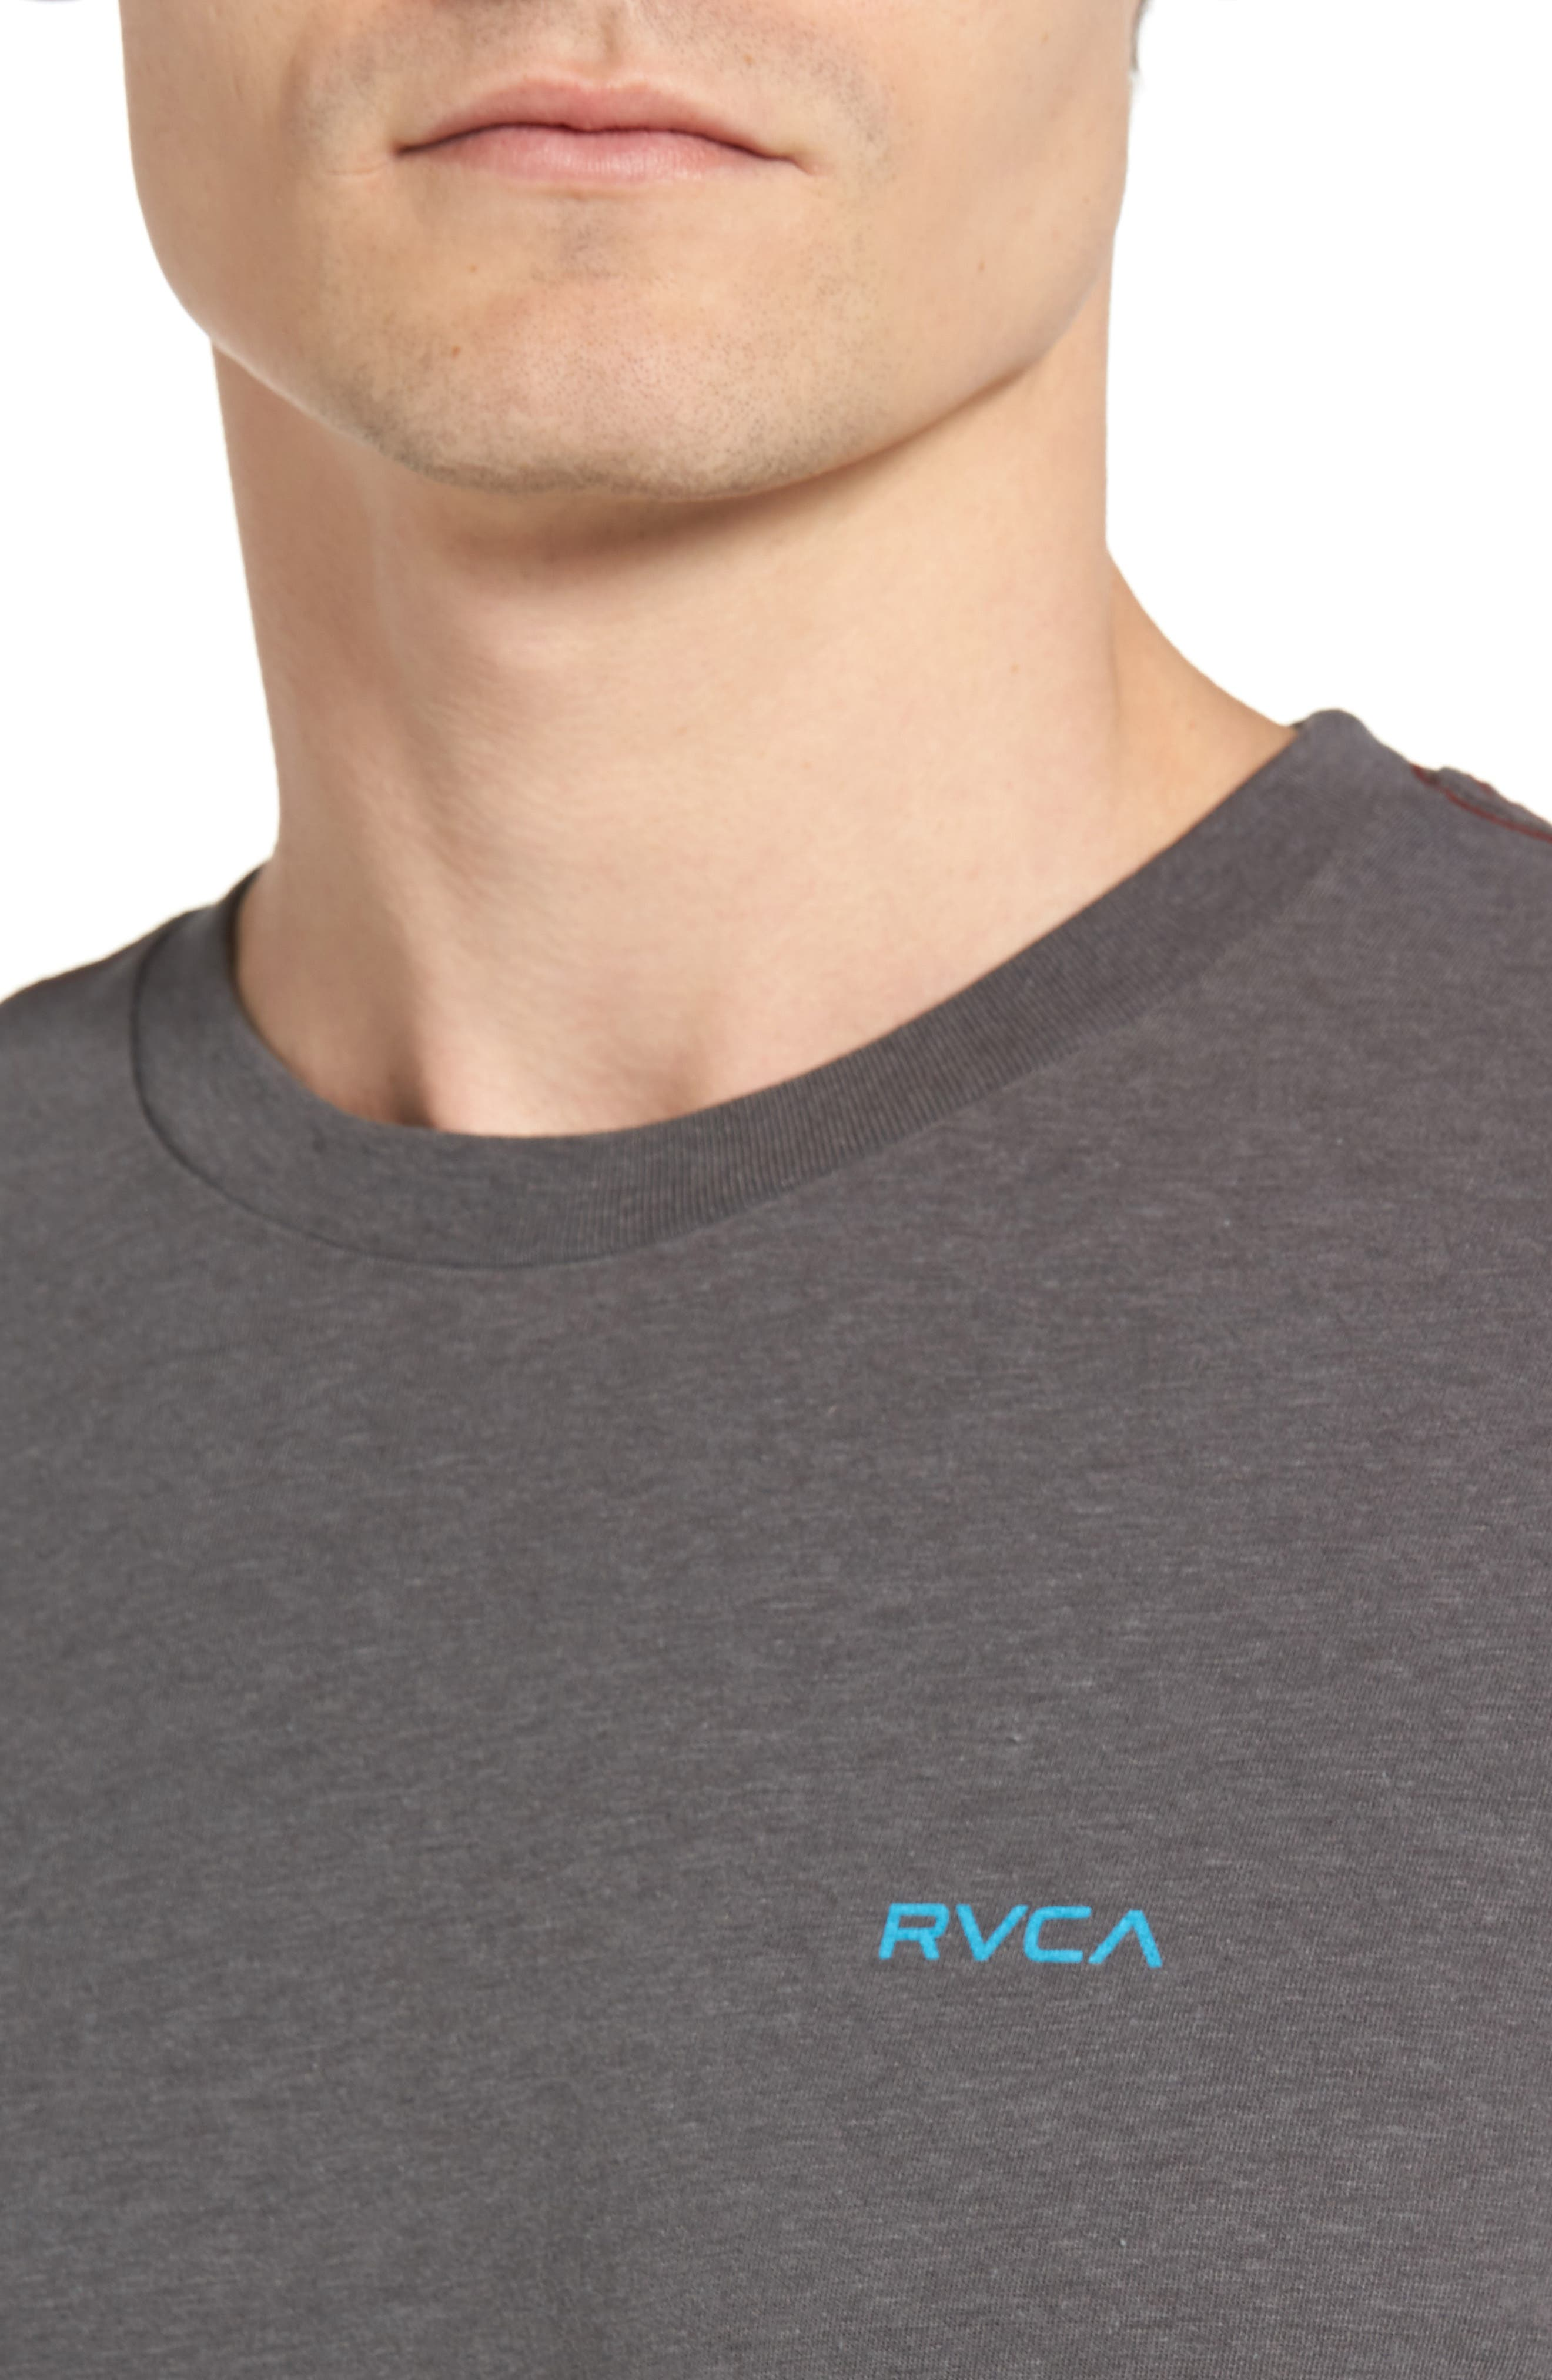 Small RVCA Chest Graphic T-Shirt,                             Alternate thumbnail 4, color,                             076